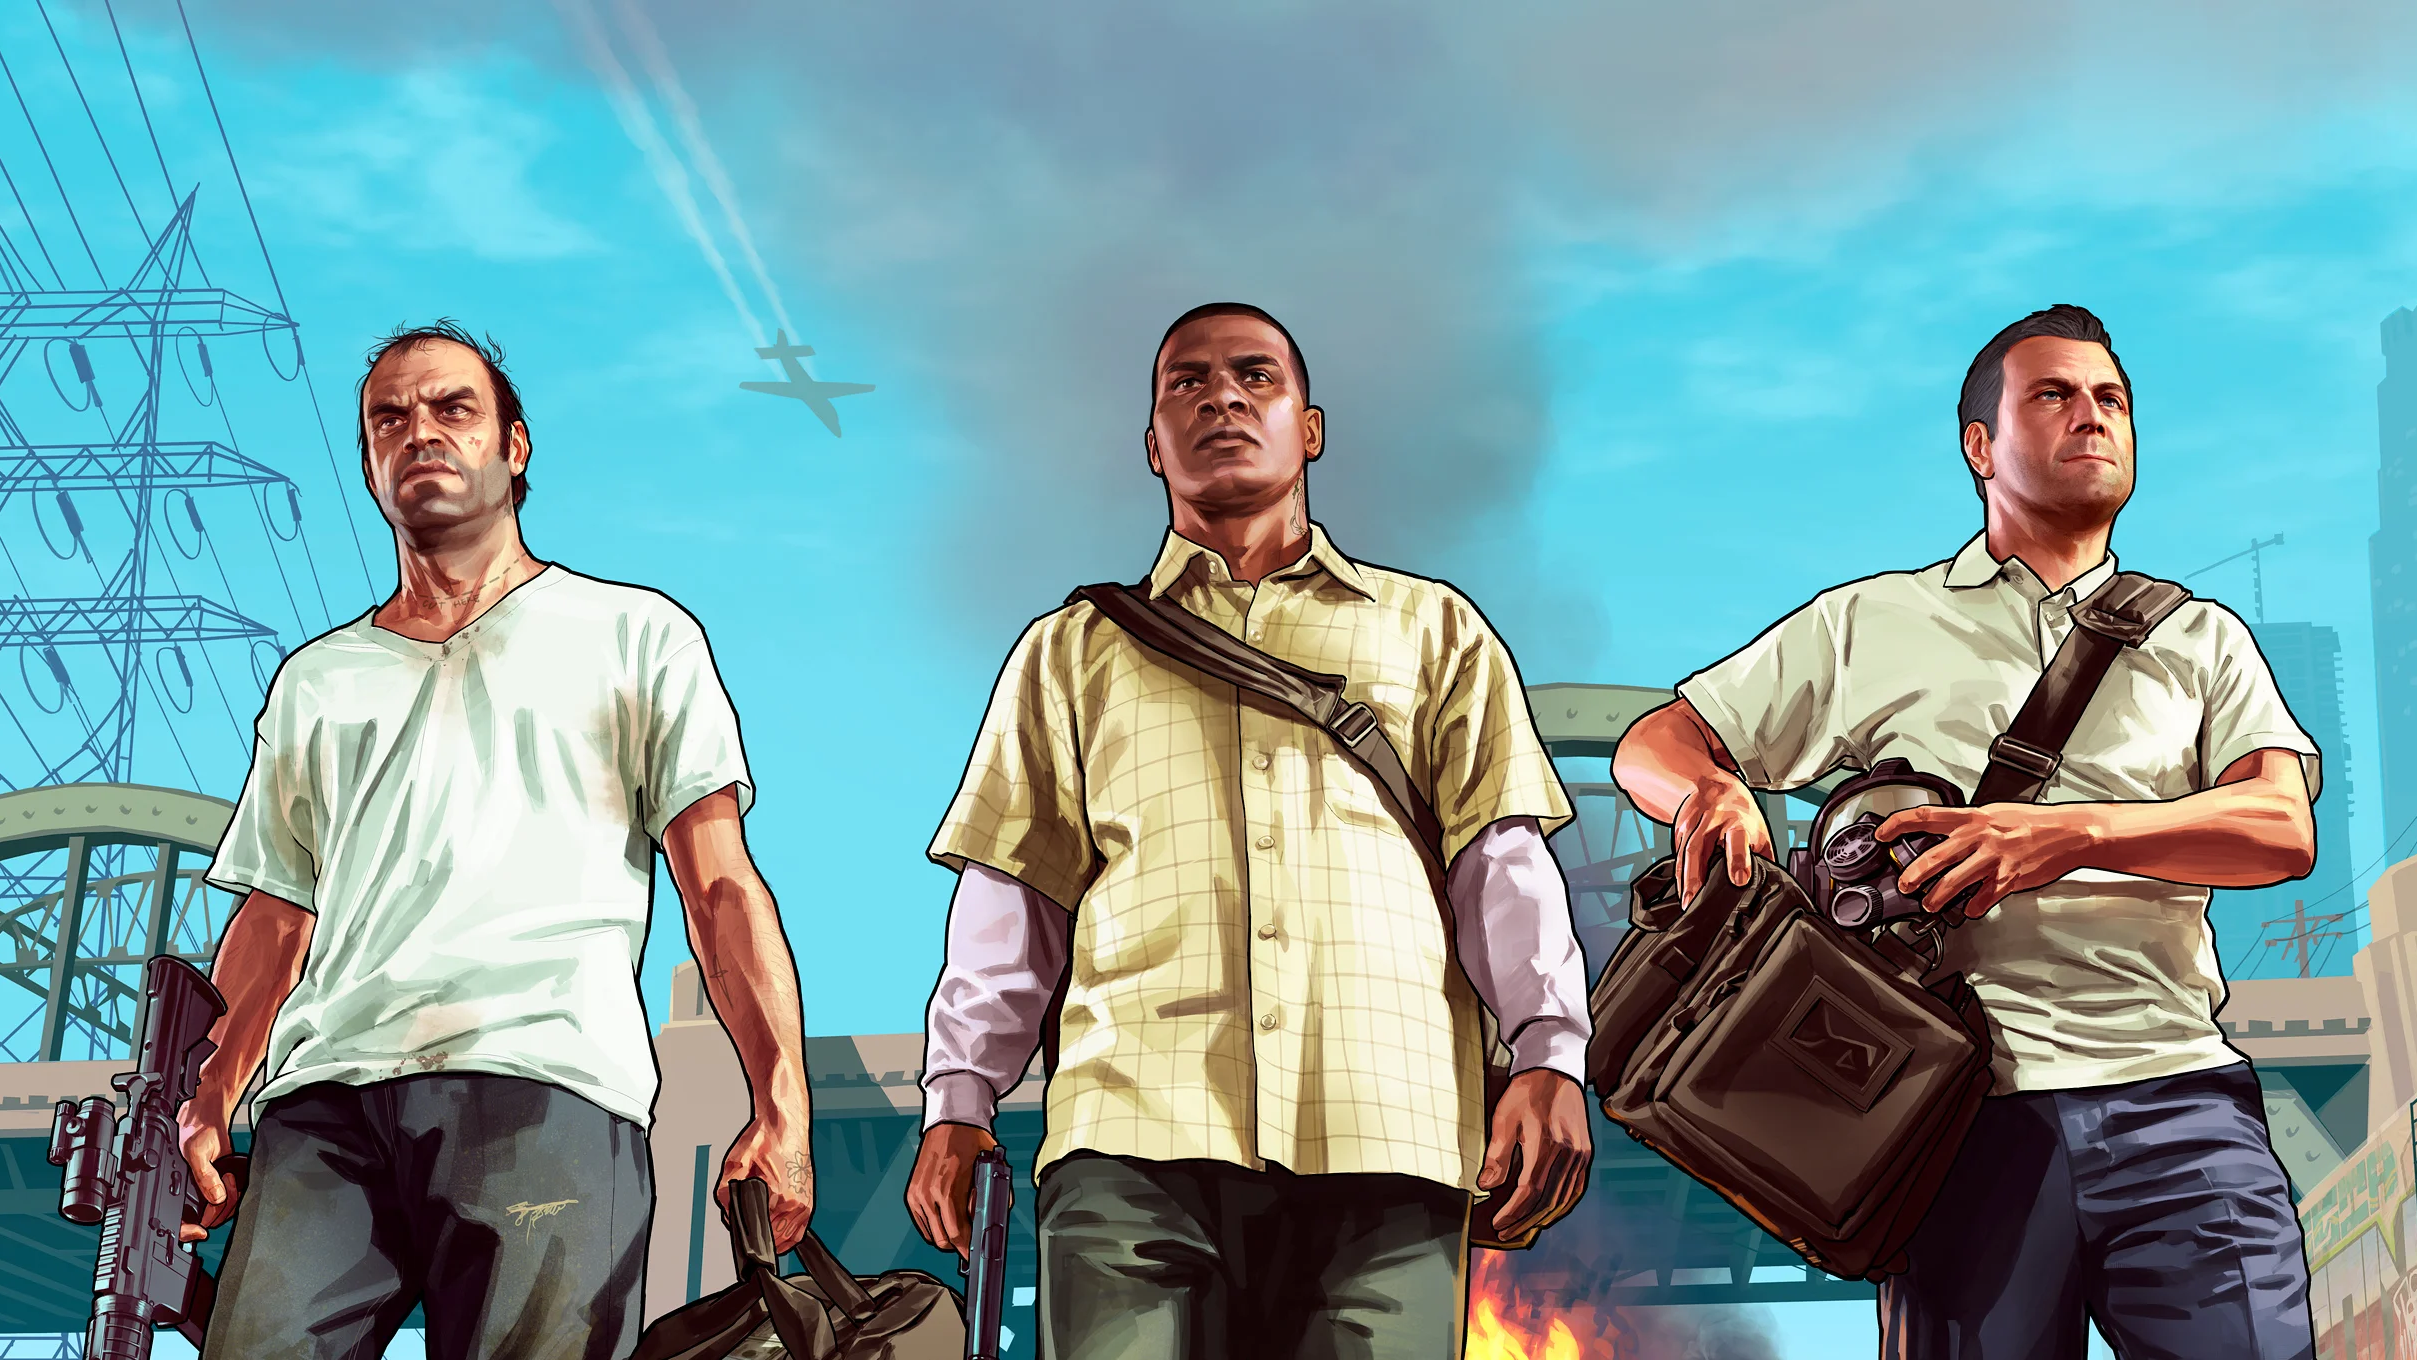 Grand Theft Auto V Is Going To Be Free On PC [Update: Epic Game Store Is Down]